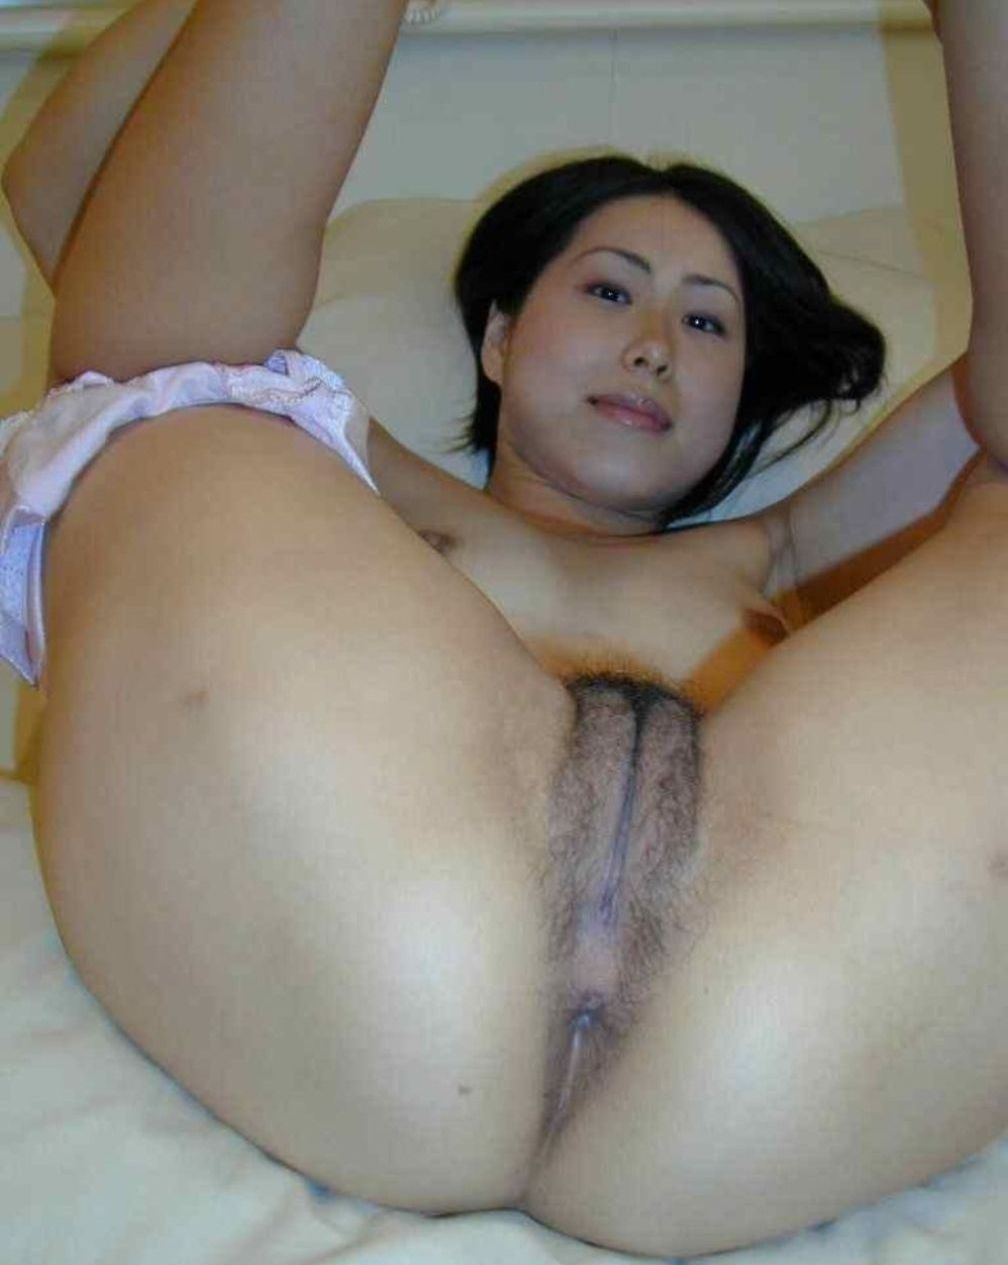 Naked Asian Women Photos